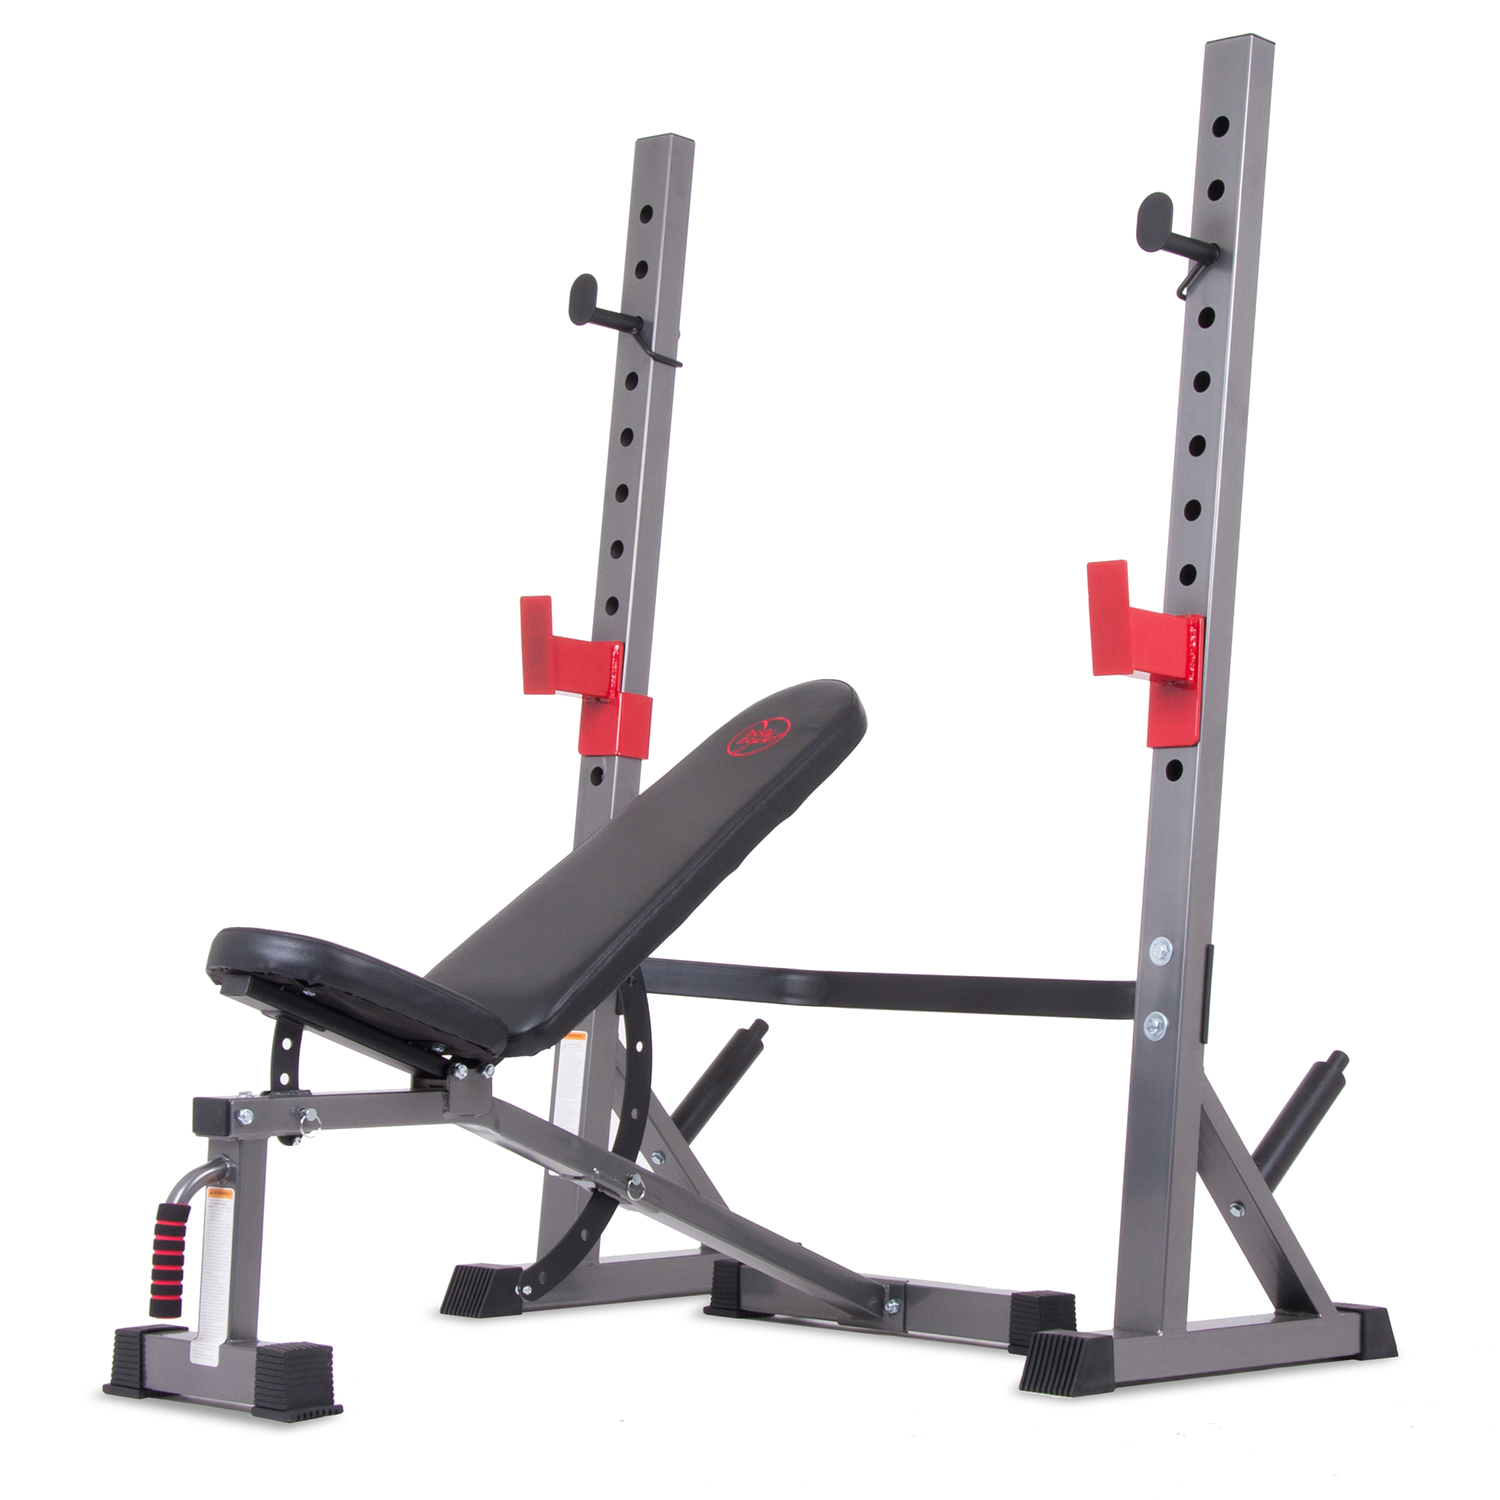 Body Champ BCB5280 Two Piece Set Olympic Weight Bench with Squat Rack by HUPA International Inc